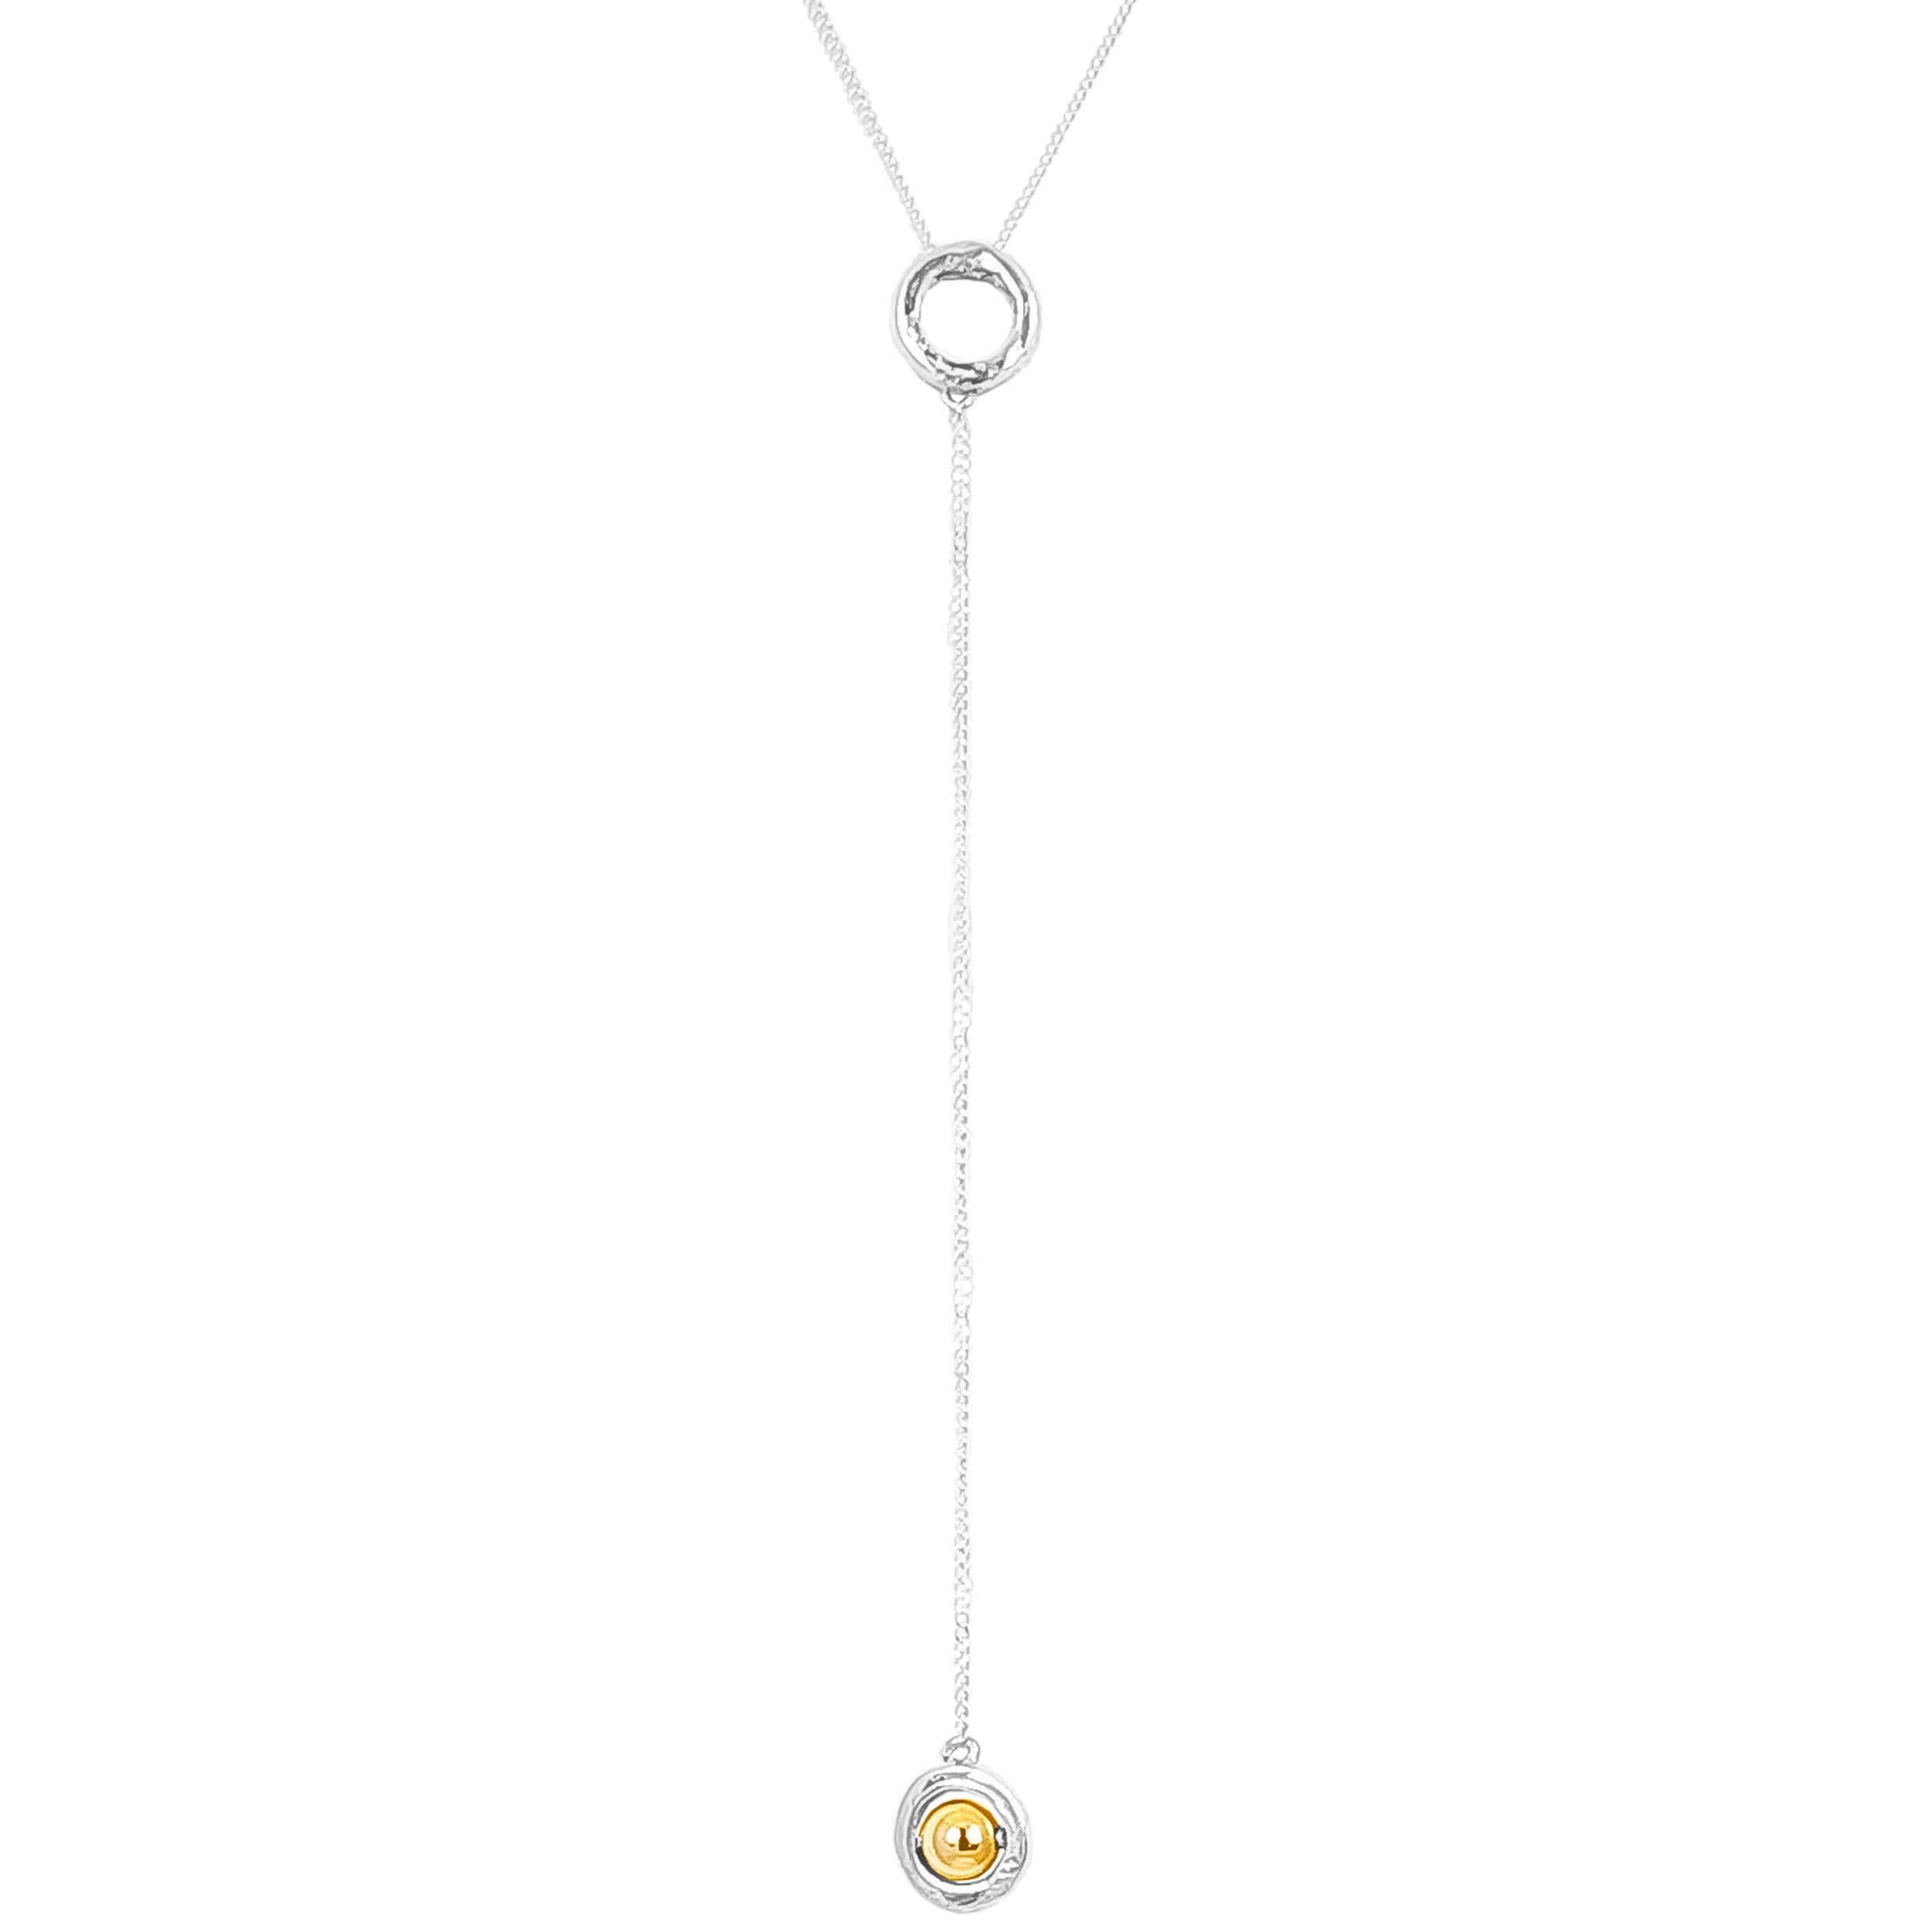 Atticus Fine Charm Lariet Necklace | Polished Gold Detail